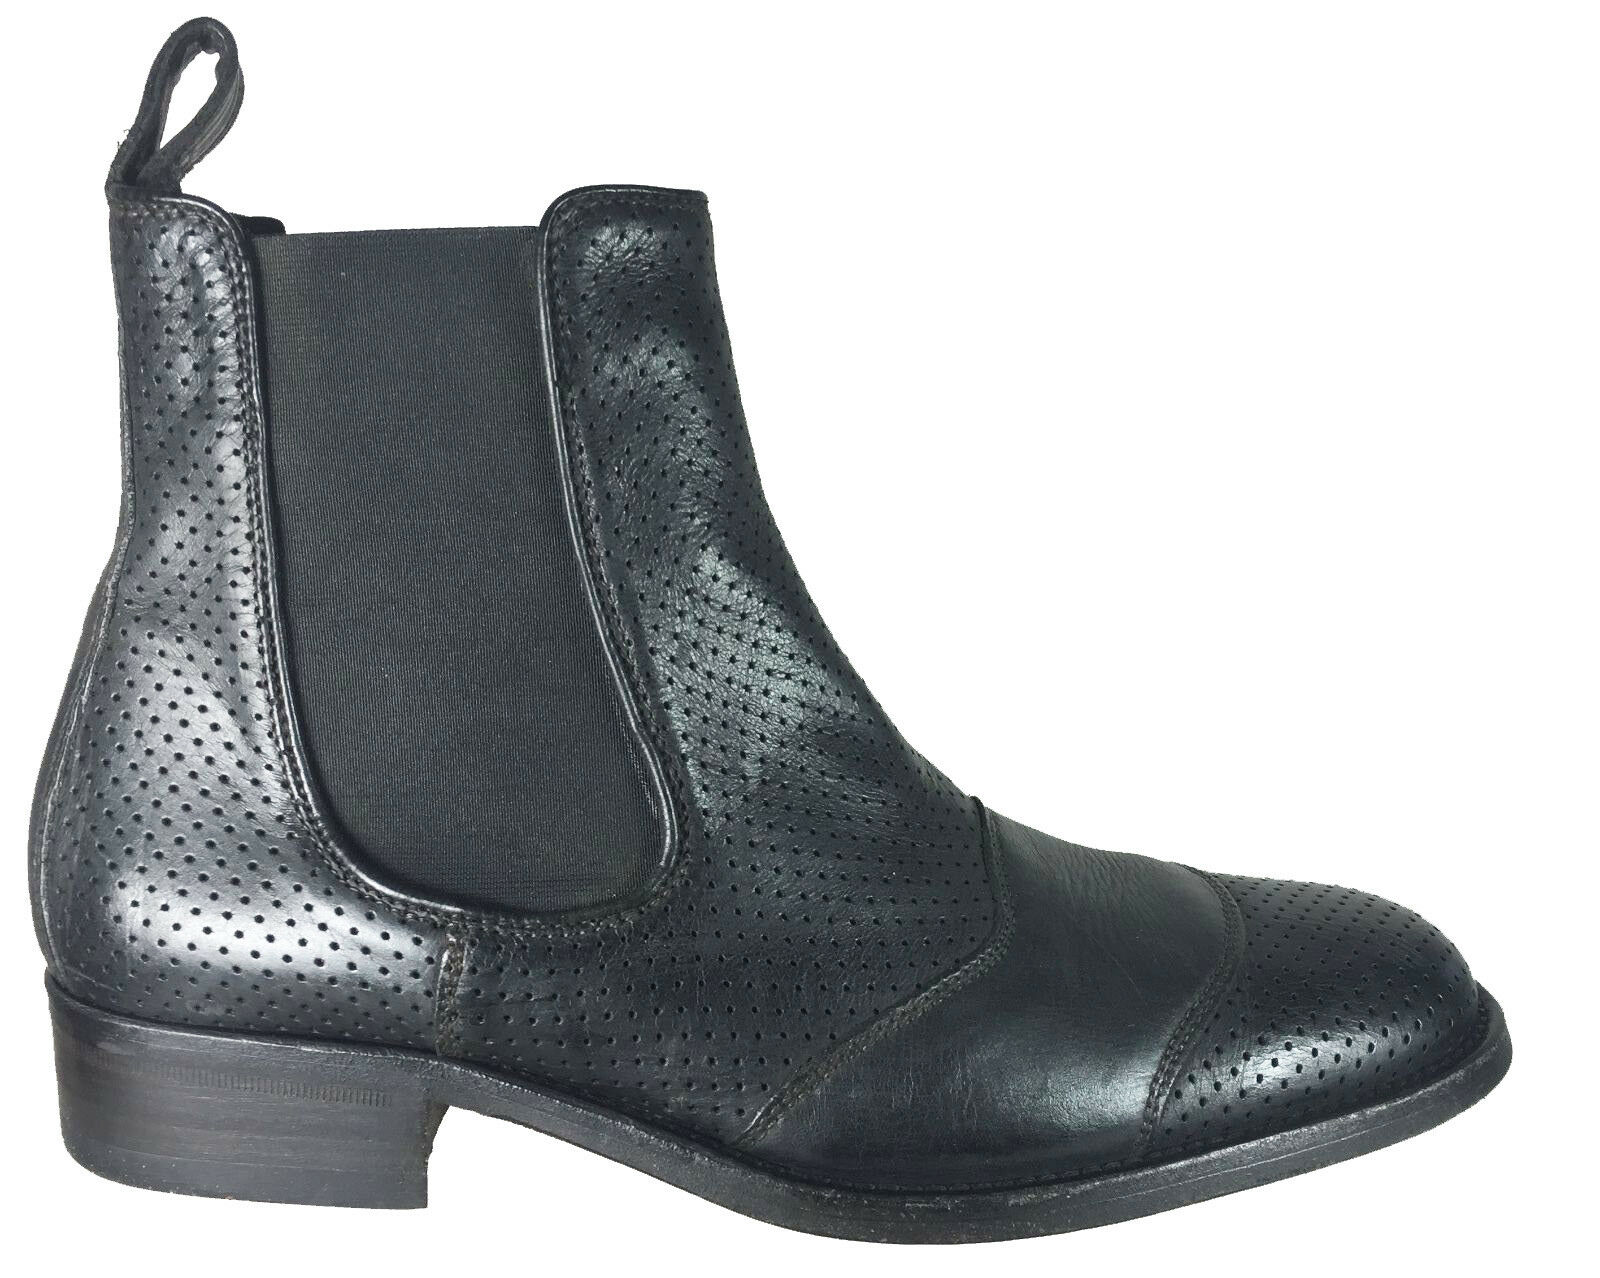 Belstaff Uomo Classic Tourmaster Ankle Perforated Leather Boots EU Size 42 Shoes